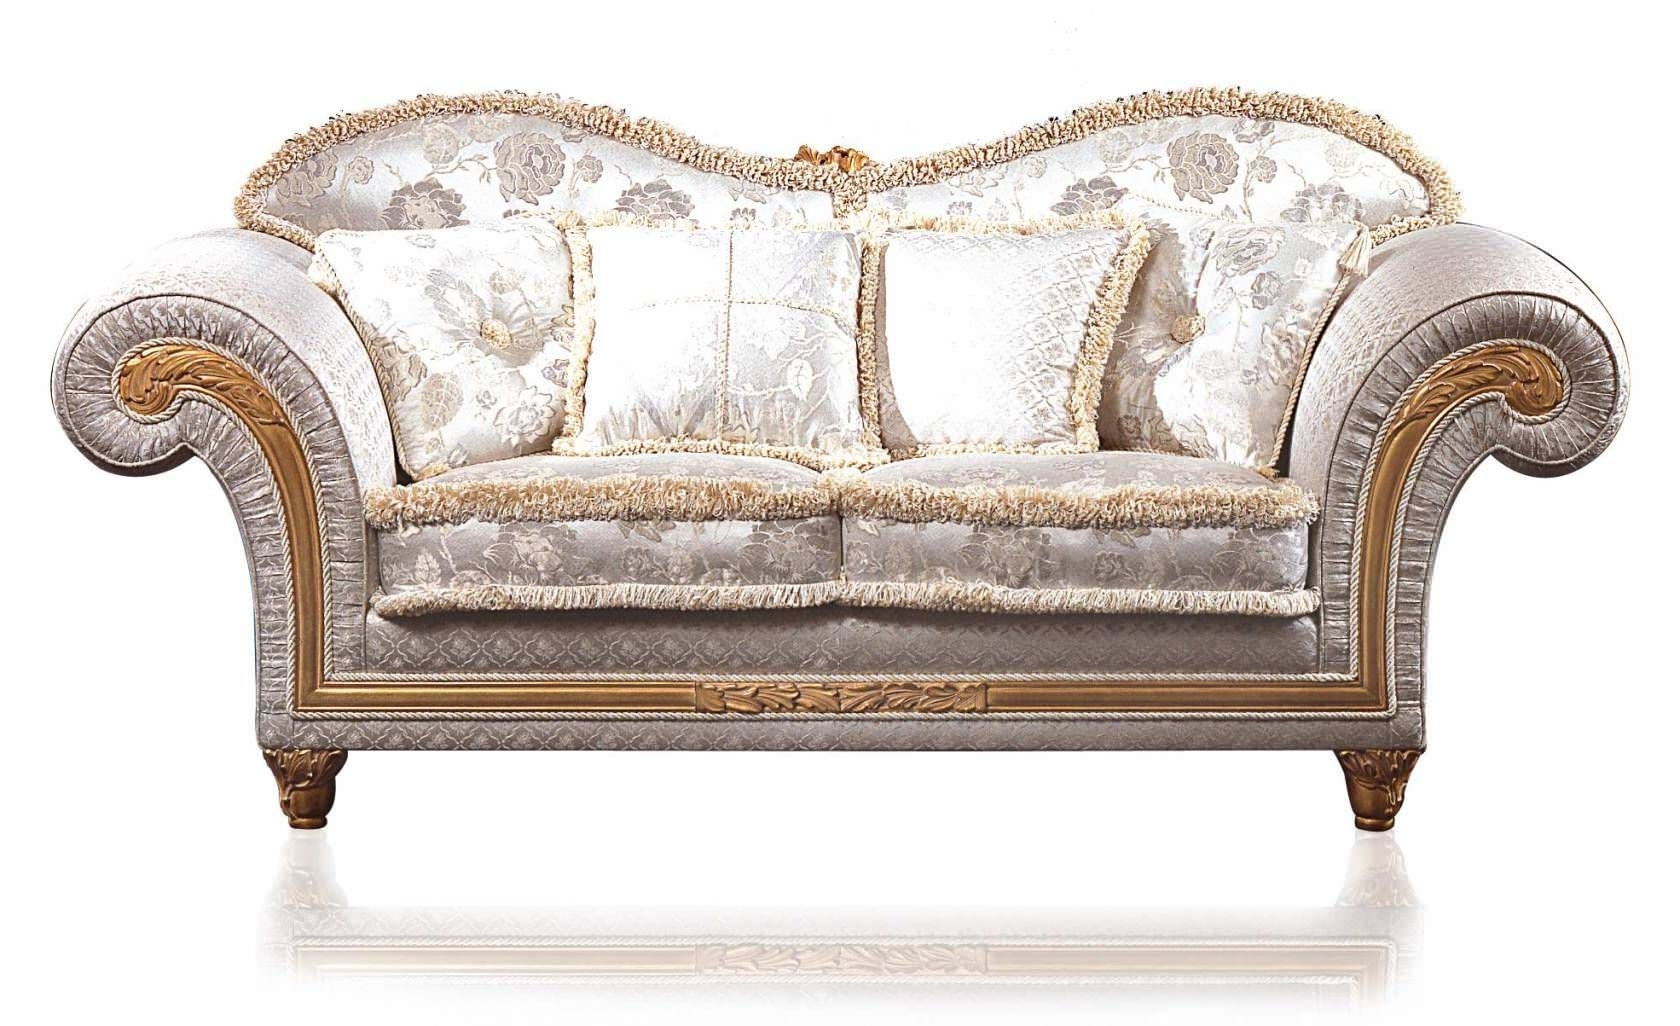 Sofa Design: Marseille Couches Classic Sofas Coming Stunning Range Inside Fashionable Retro Sofas (View 5 of 20)